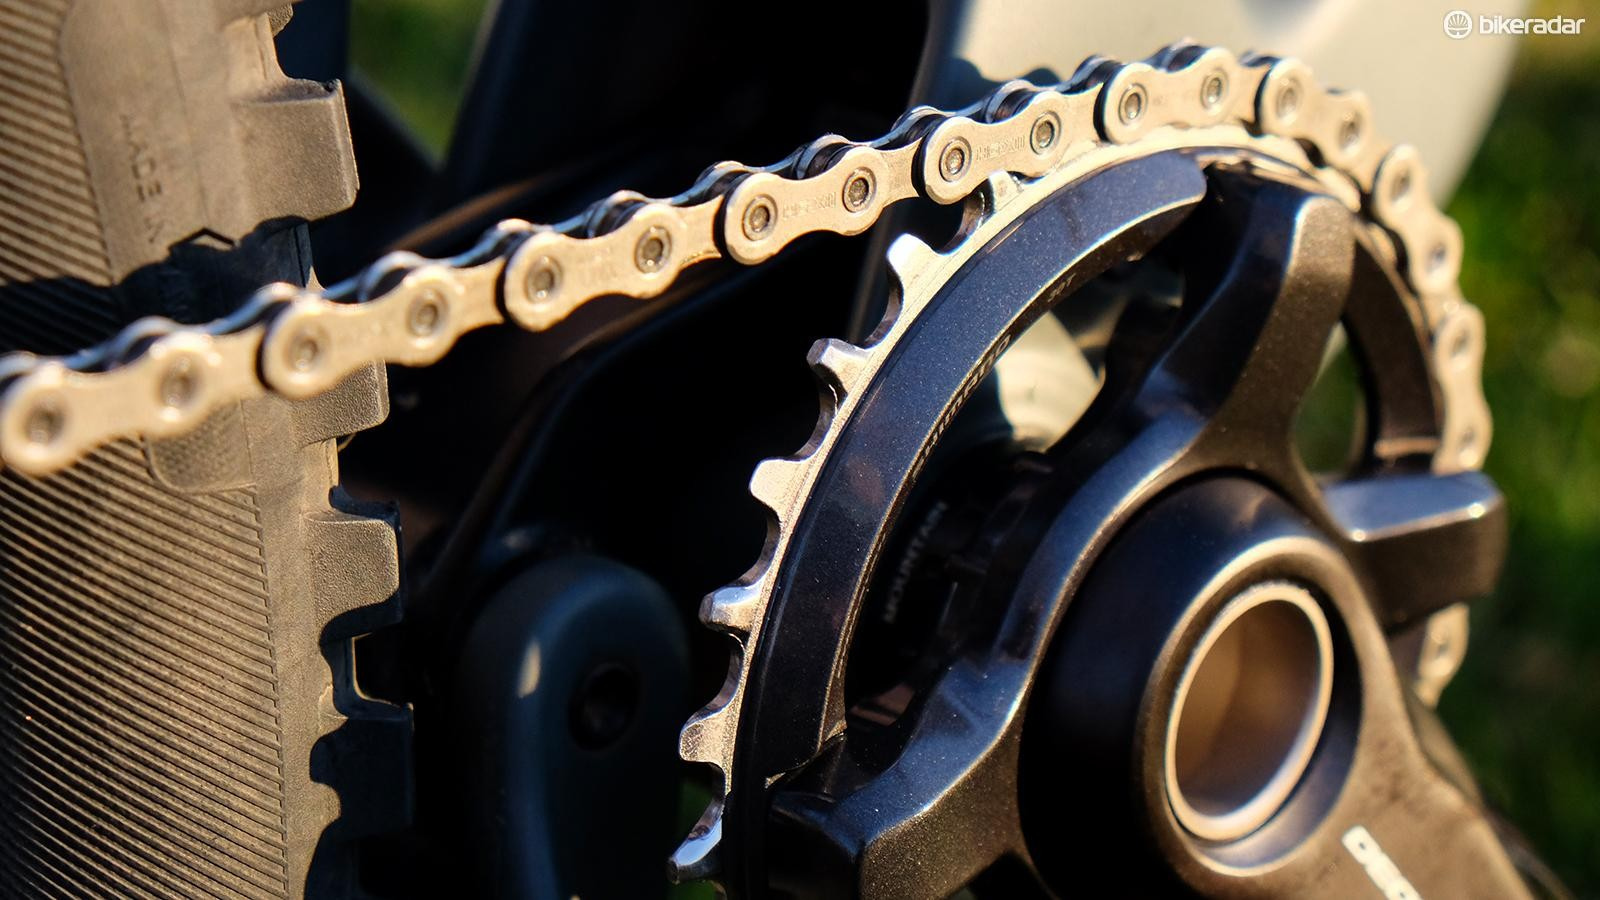 11-speed may feel old hat, but Shimano groupsets are notoriously reliable